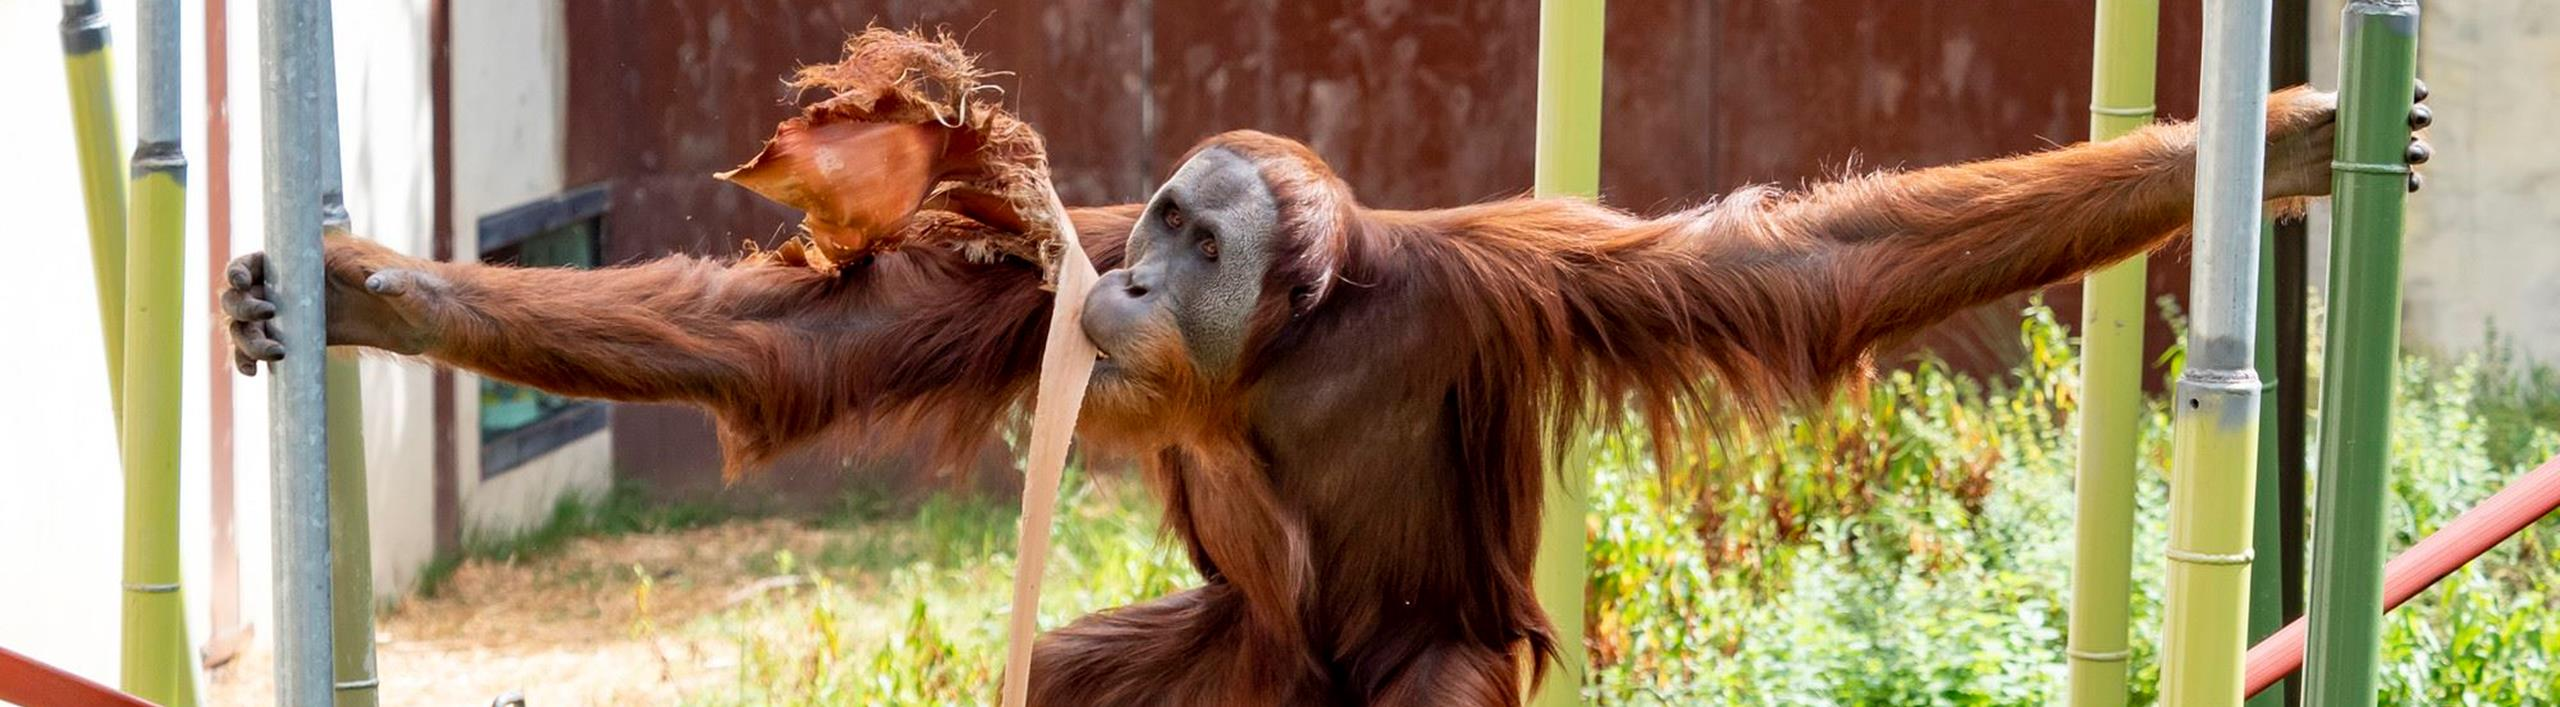 Orang-utan swinging between poles while holding a palm fond in its mouth.